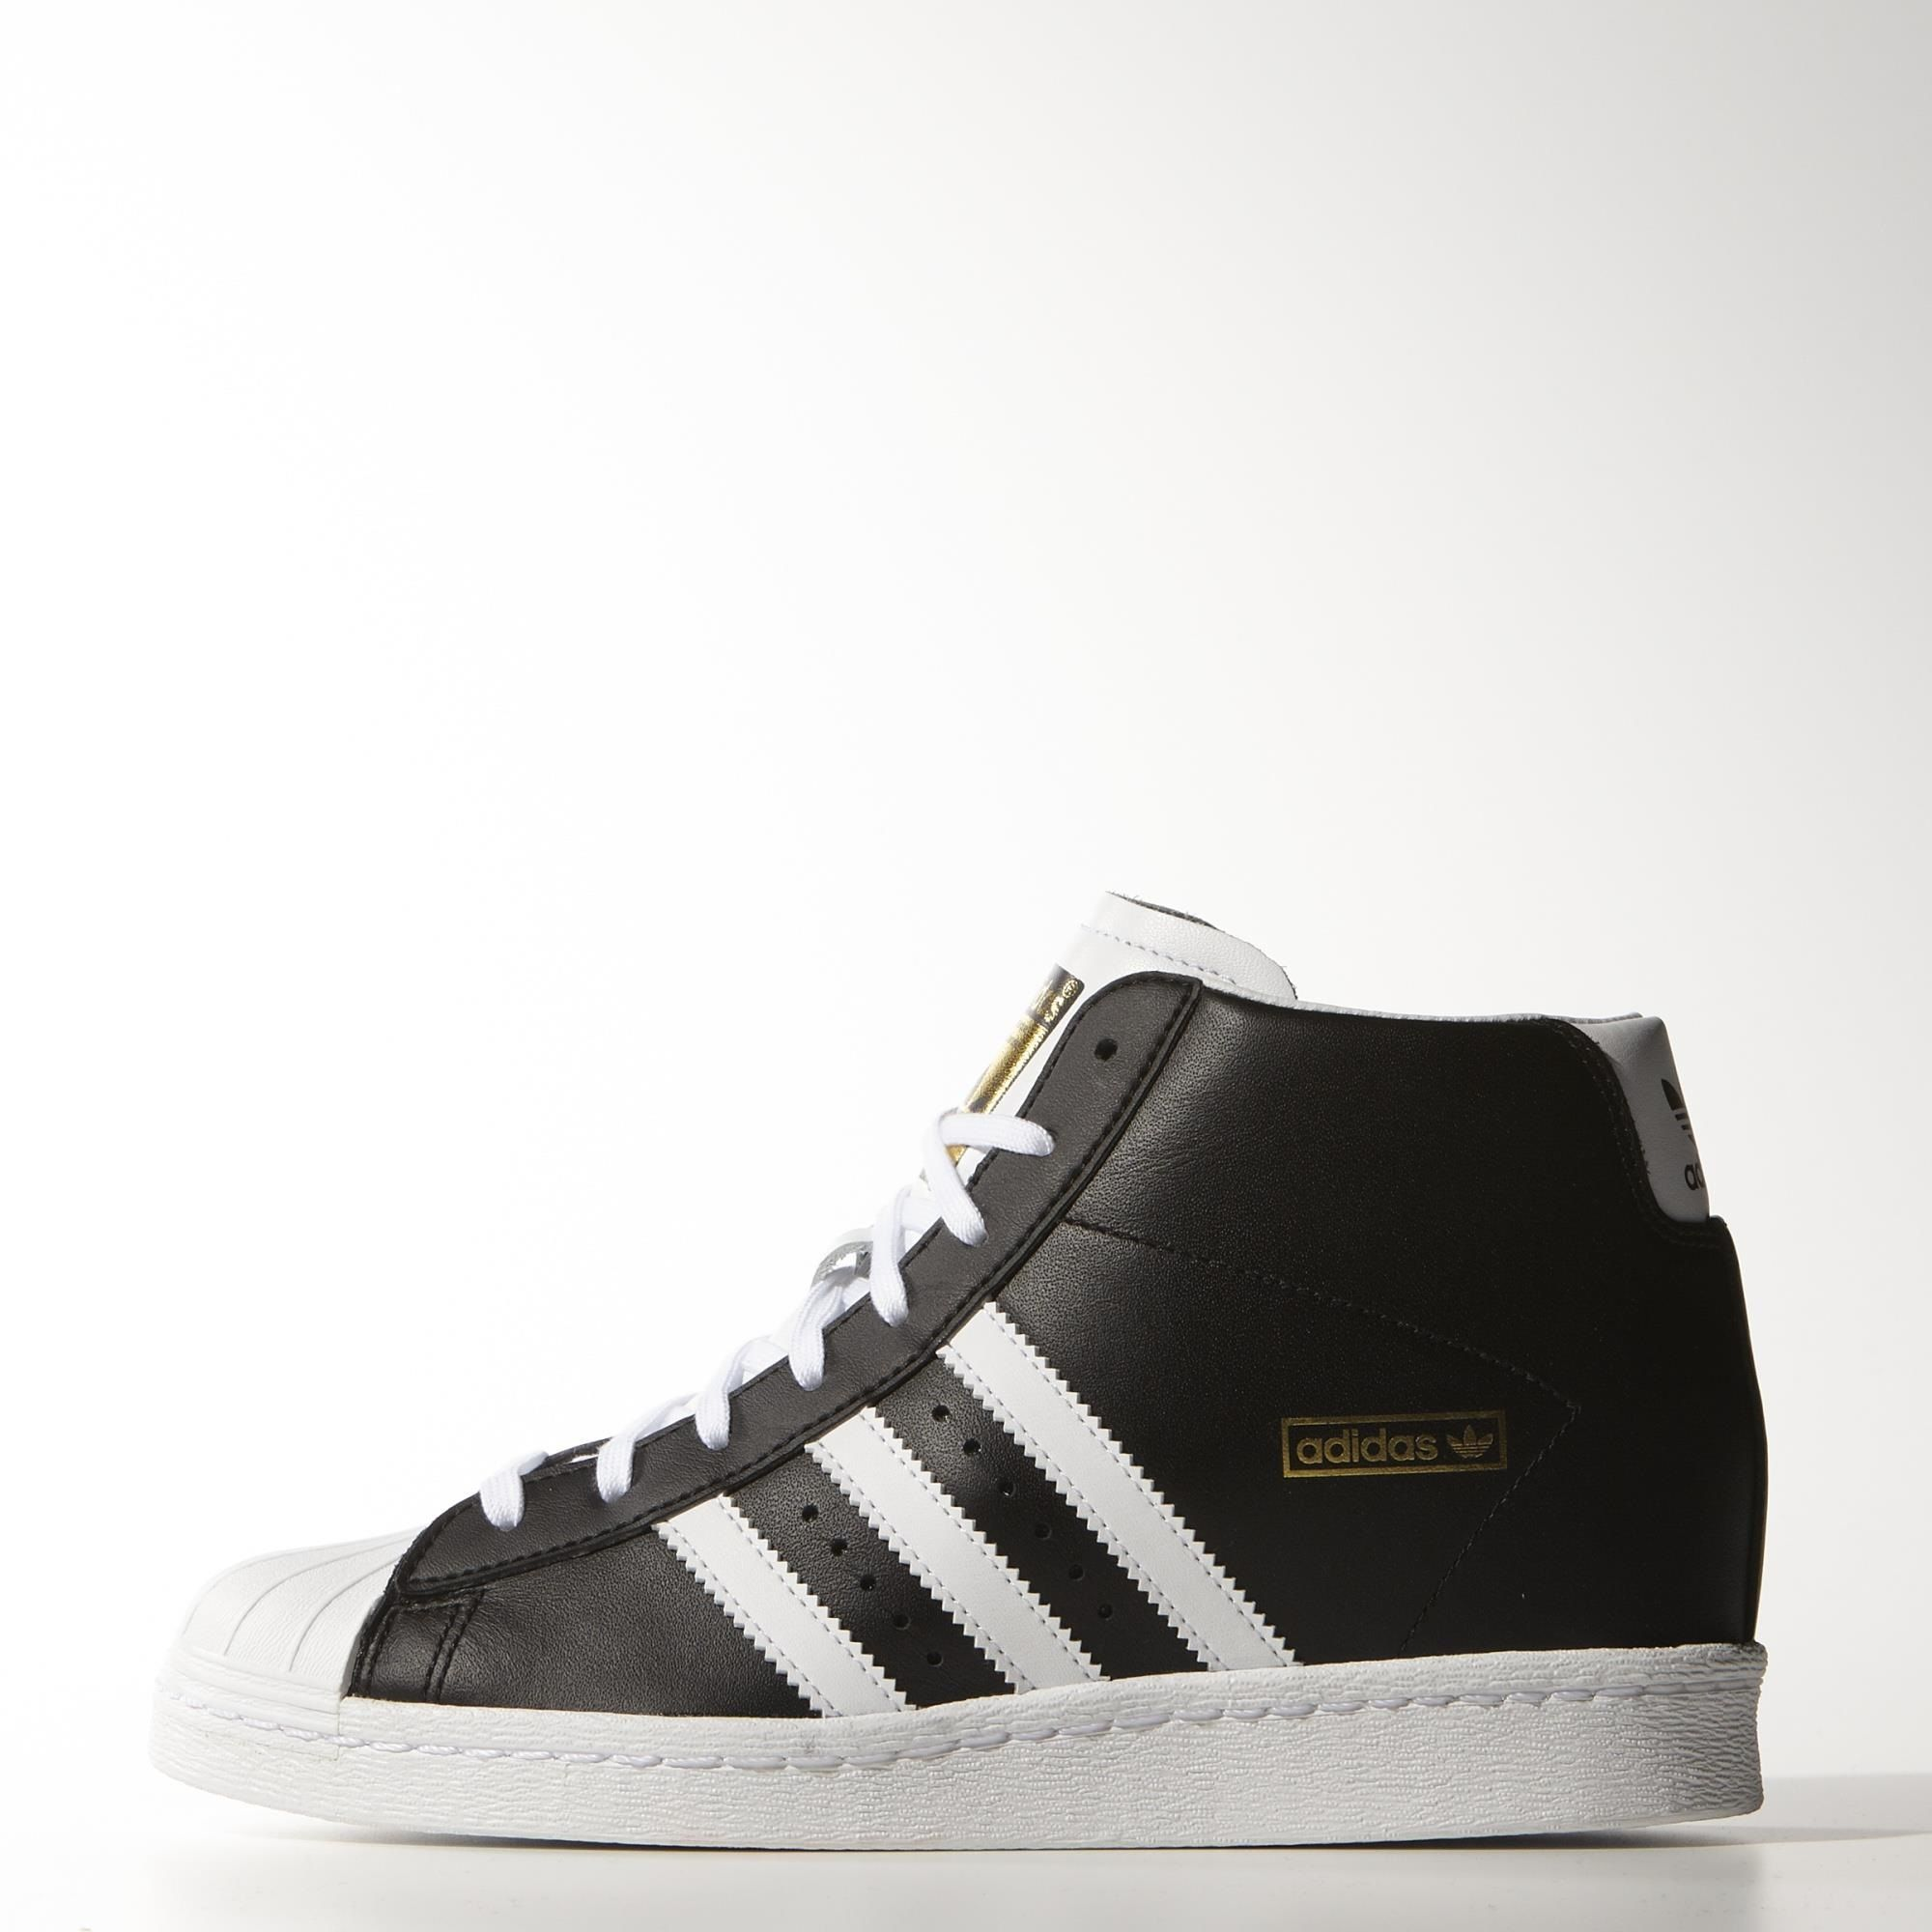 Shop for Women\\u0026#39;s Superstar Up Shoes - Gold at adidas